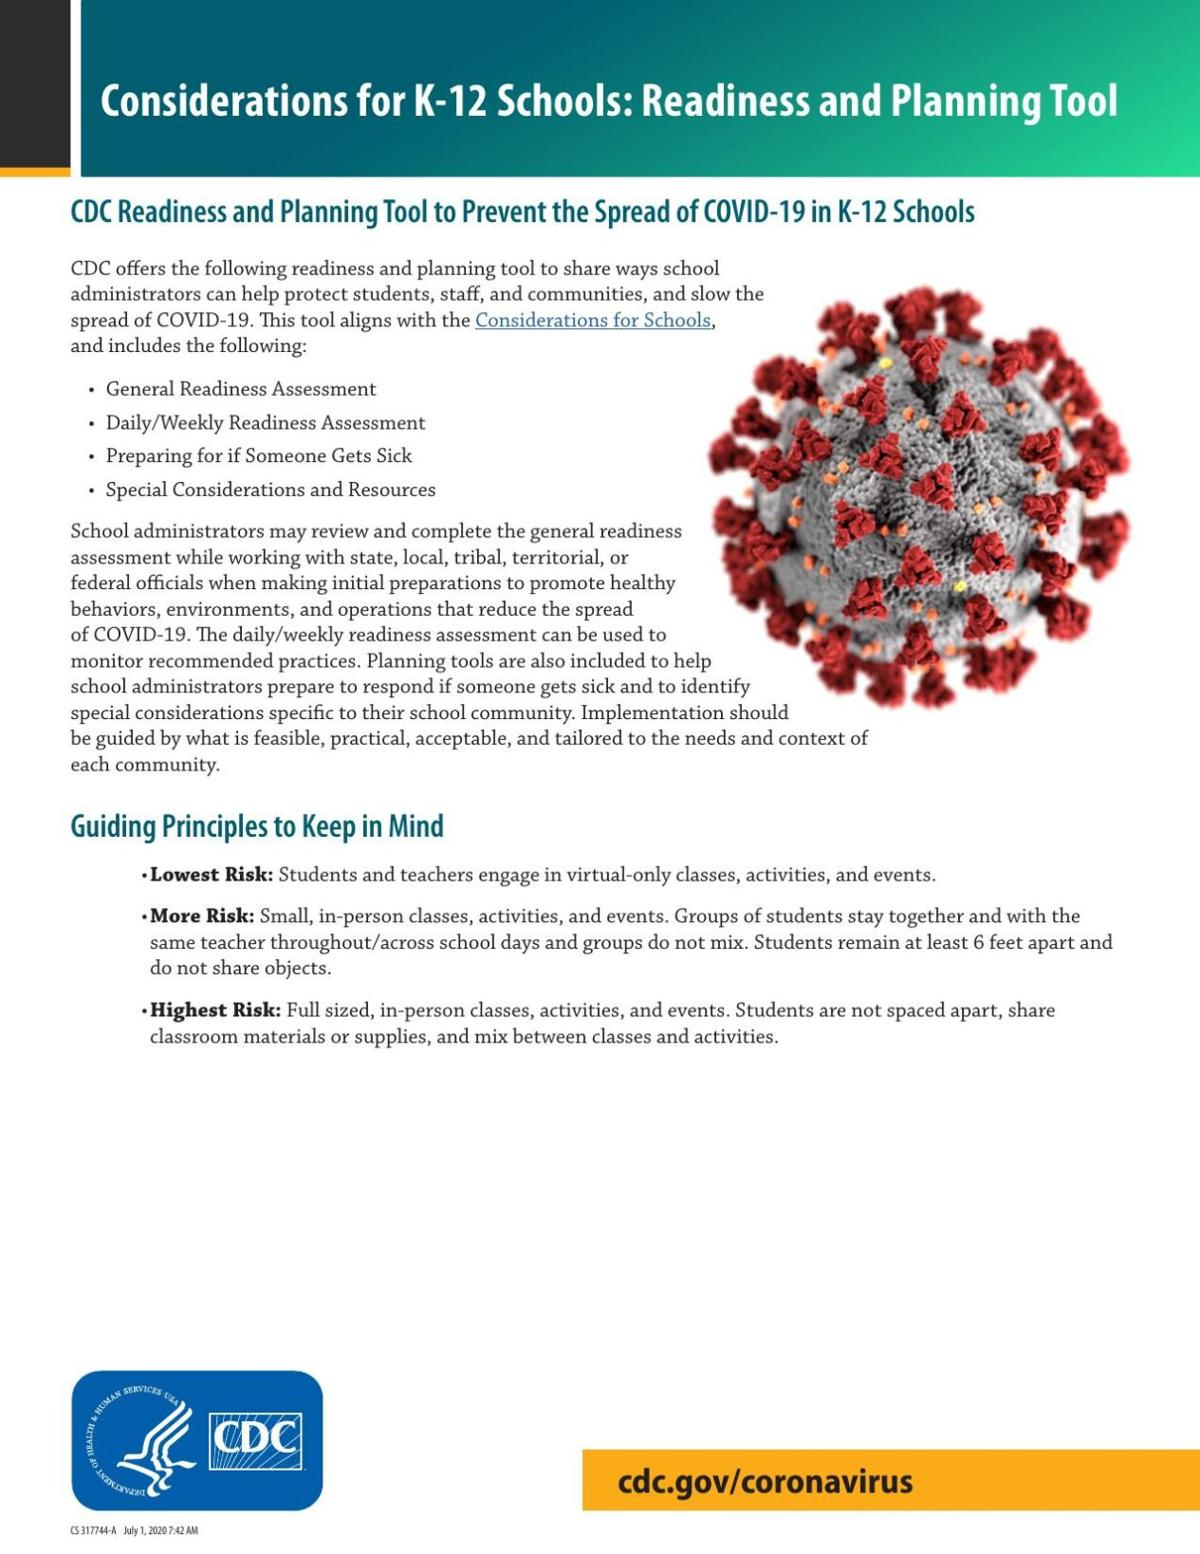 CDC Readiness and Planning Tool